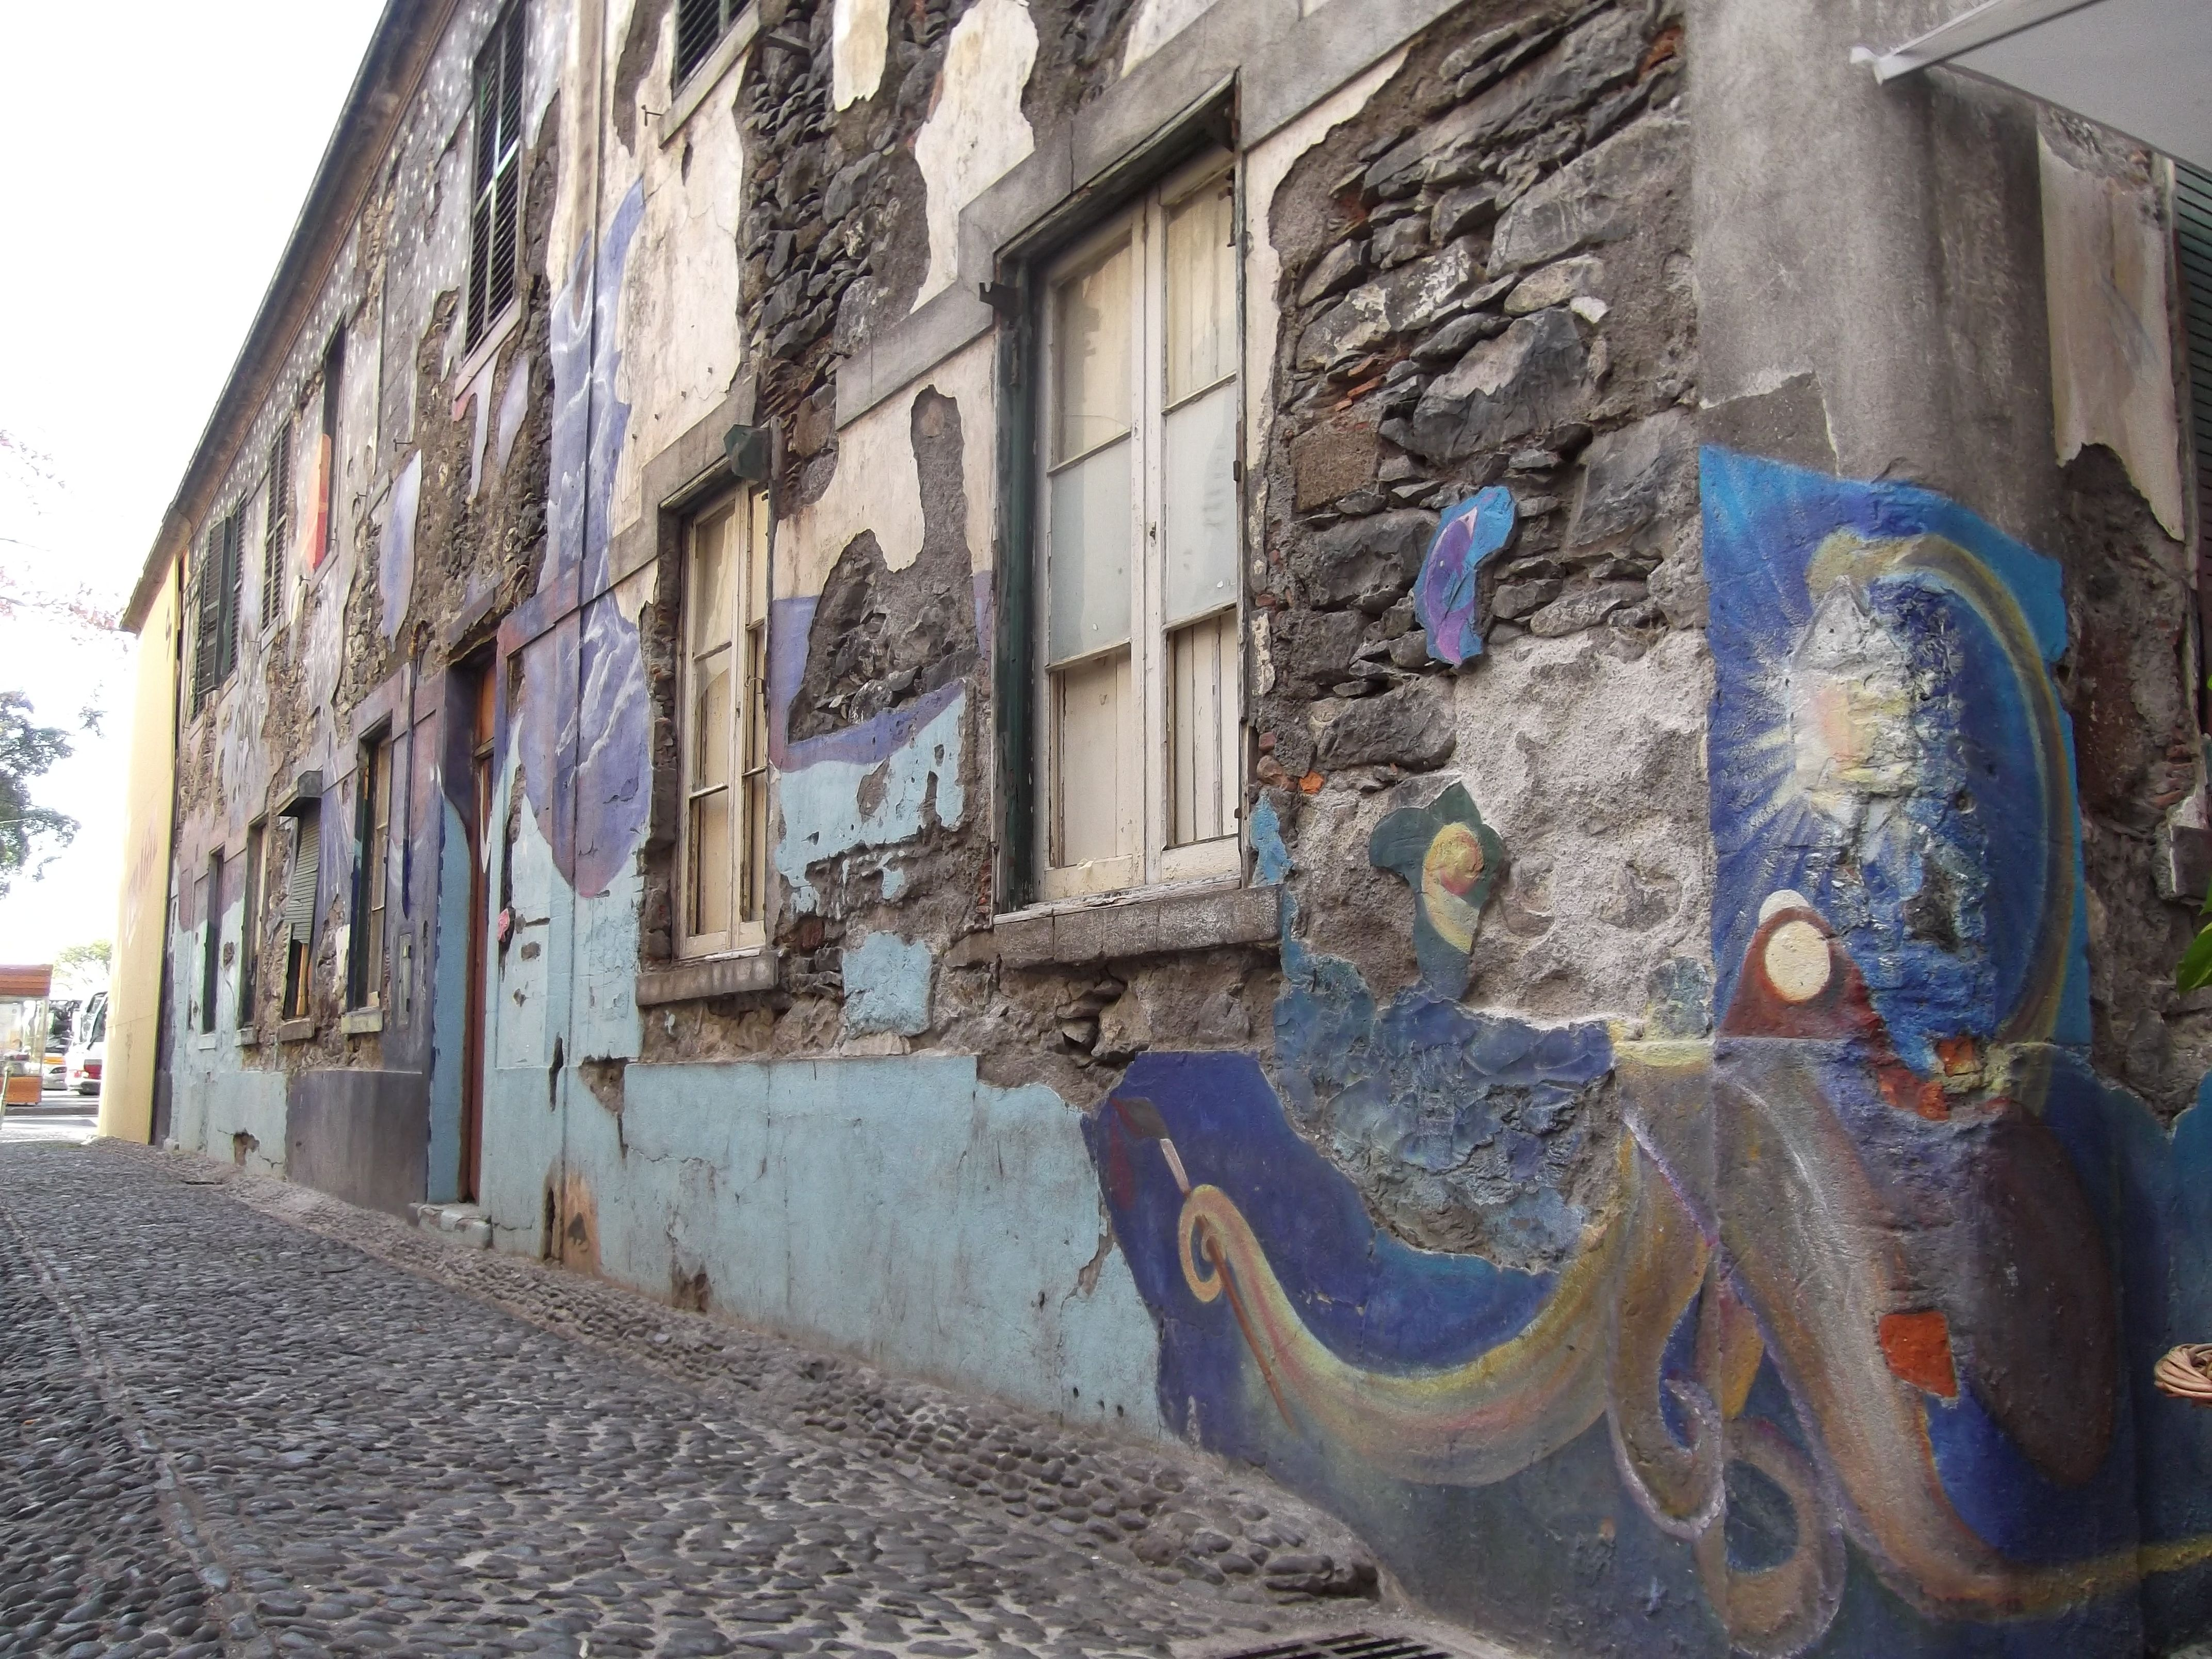 Old Town, Funchal, Madeira. Why mend a wall when you can decorate it?